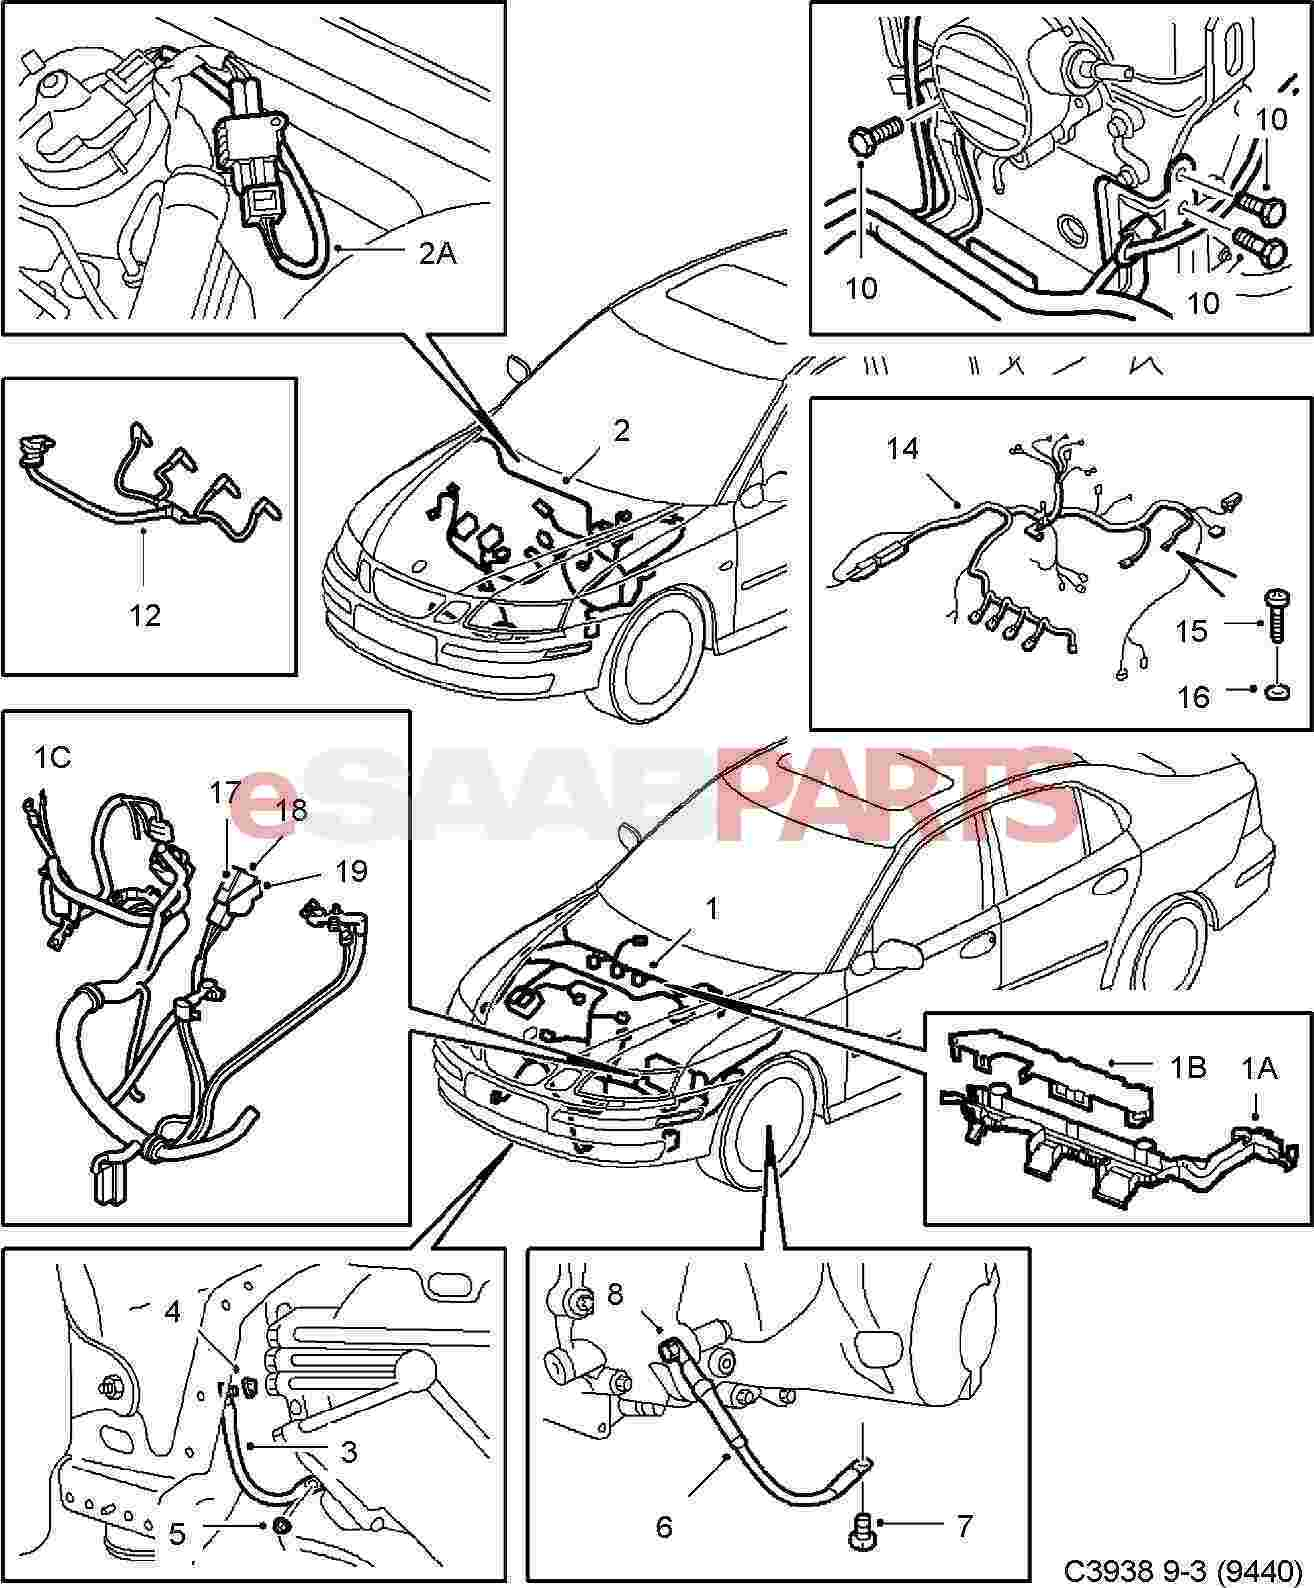 hight resolution of wiring harness for saab 9 3 2003 wiring diagram sheet saab 9 3 2004 wiring harness